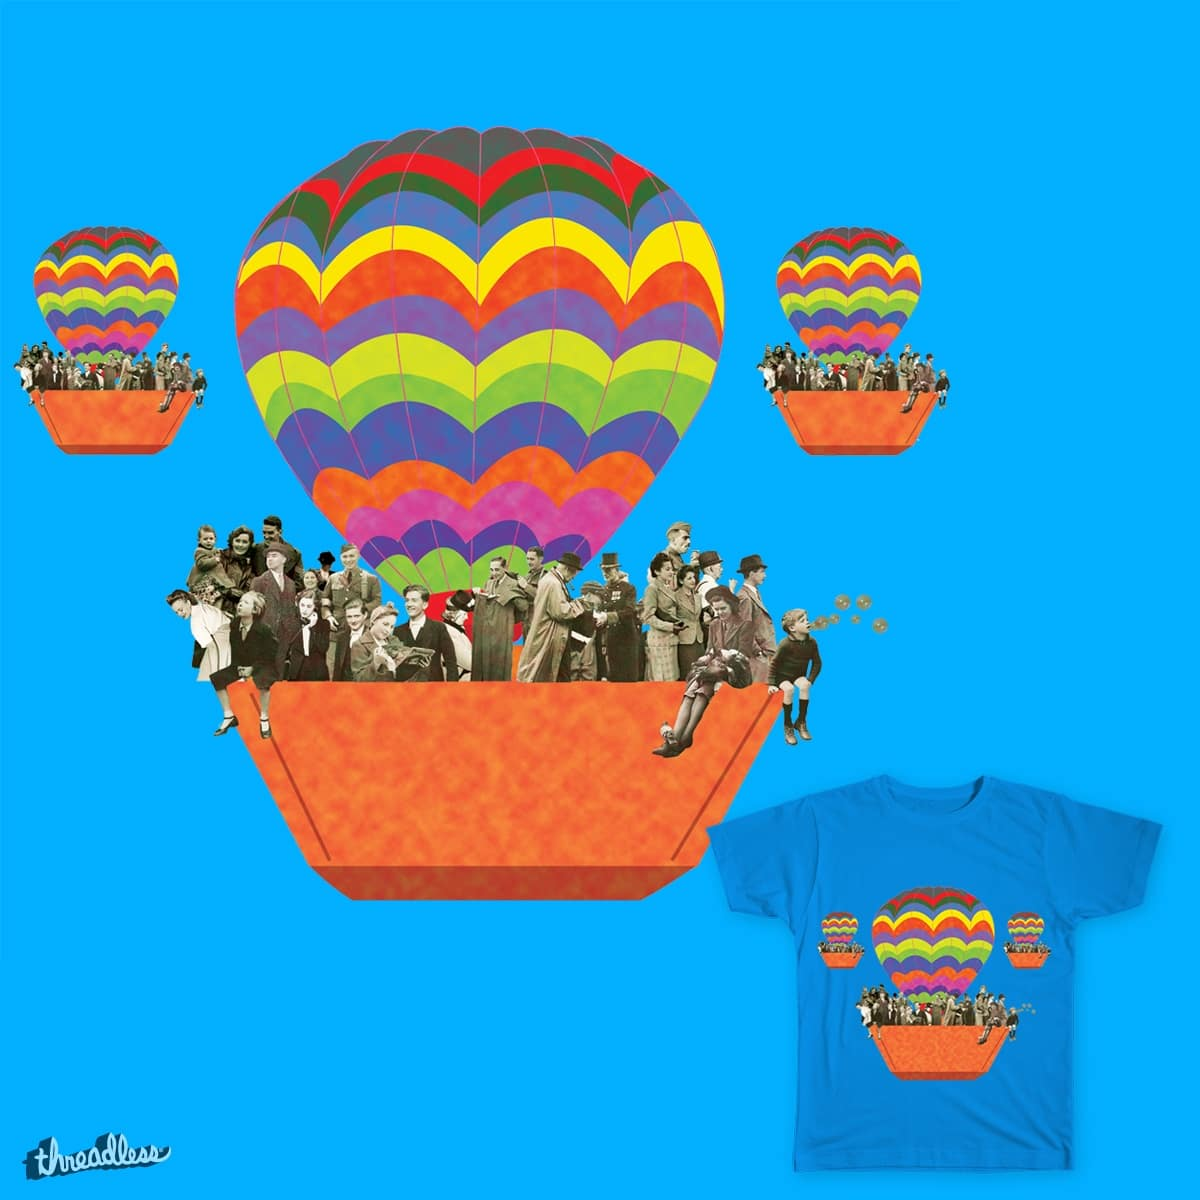 Travel & Tourism by X-zistence on Threadless